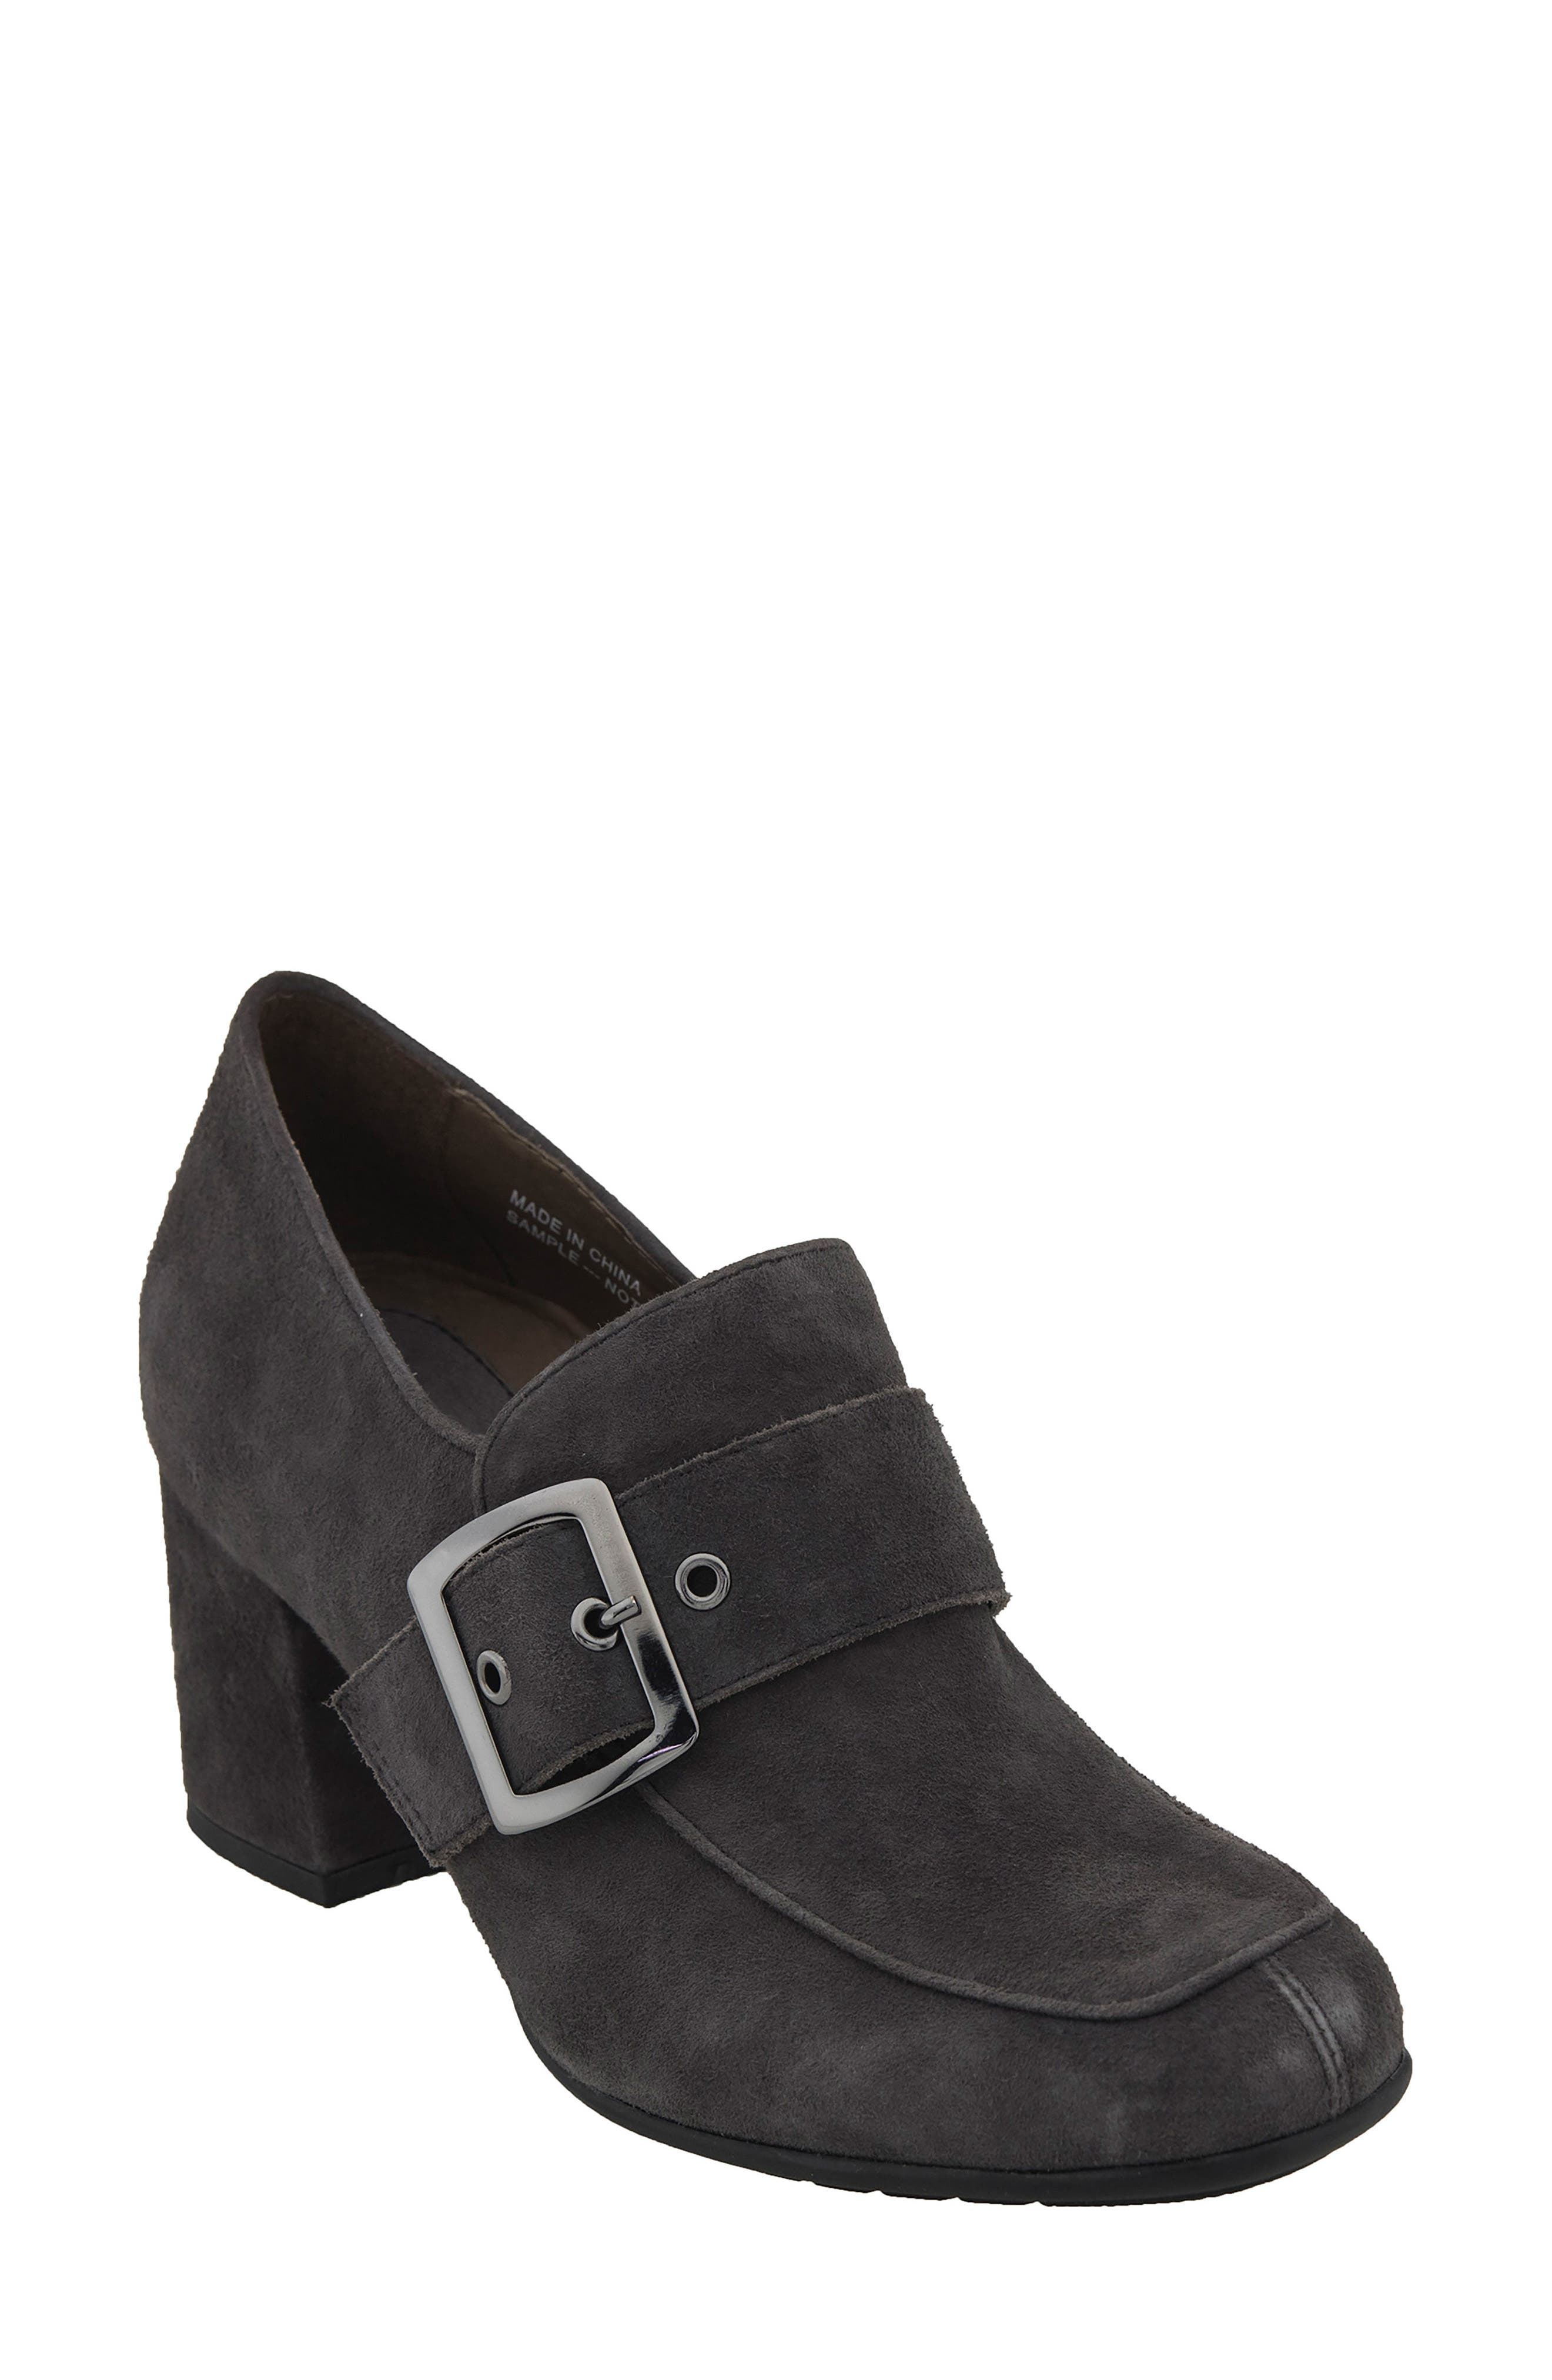 Alternate Image 1 Selected - Earthies® Rhea Buckle Strap Pump (Women)